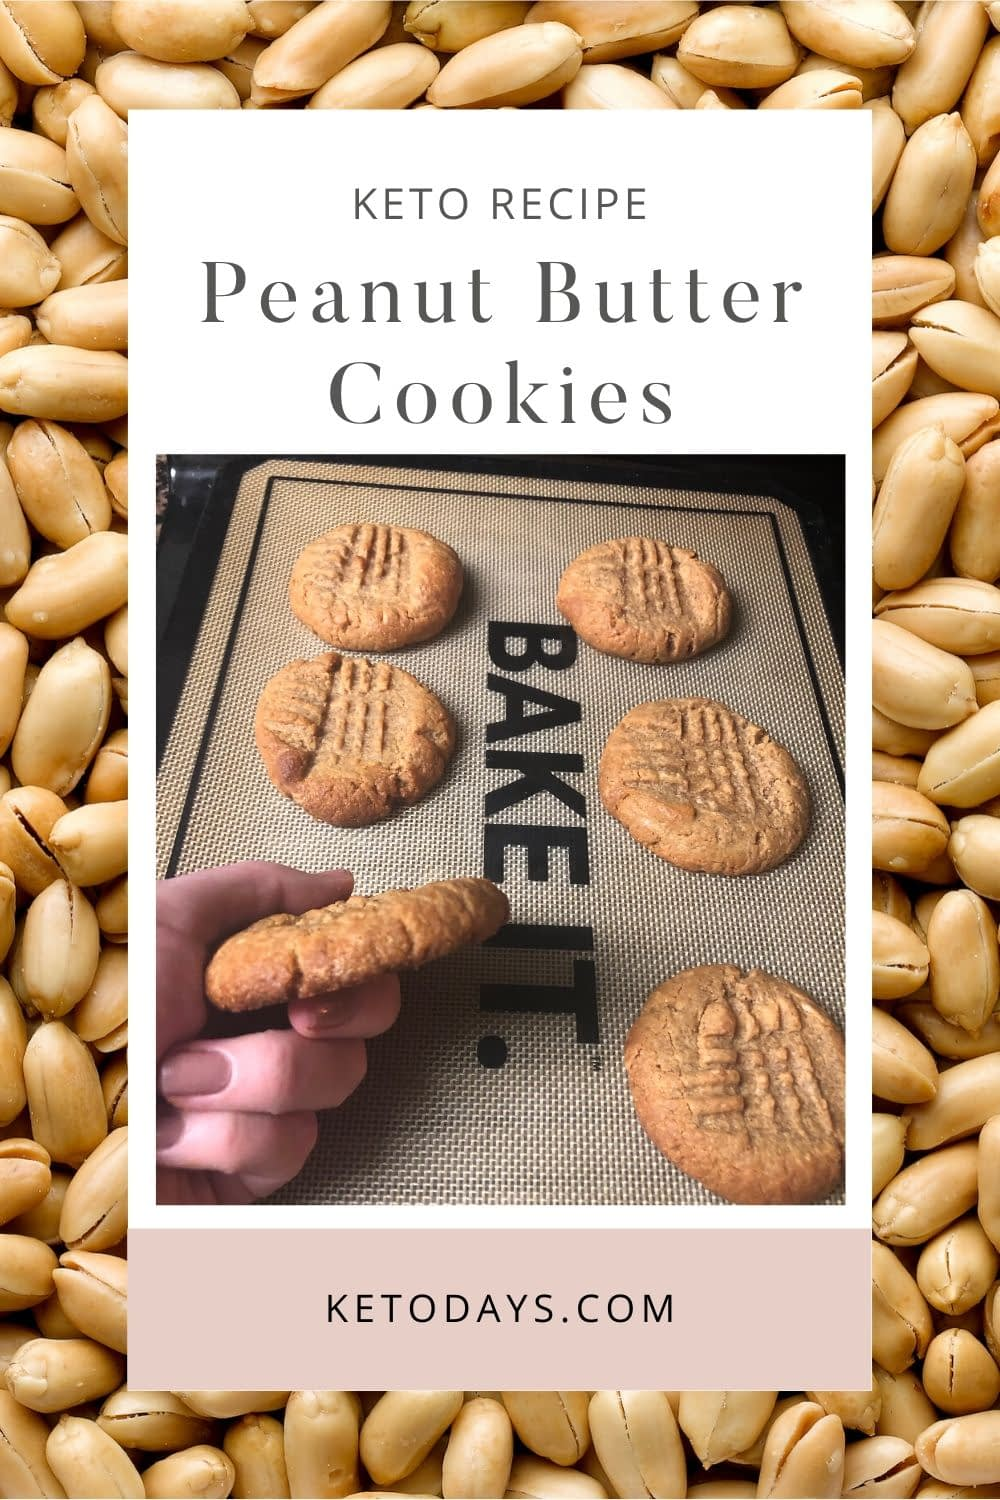 The best way to ensure success is to be prepared. Rather than getting a snack craving and running for the oreo's, use this Keto Peanut Butter Cookie Recipe instead.